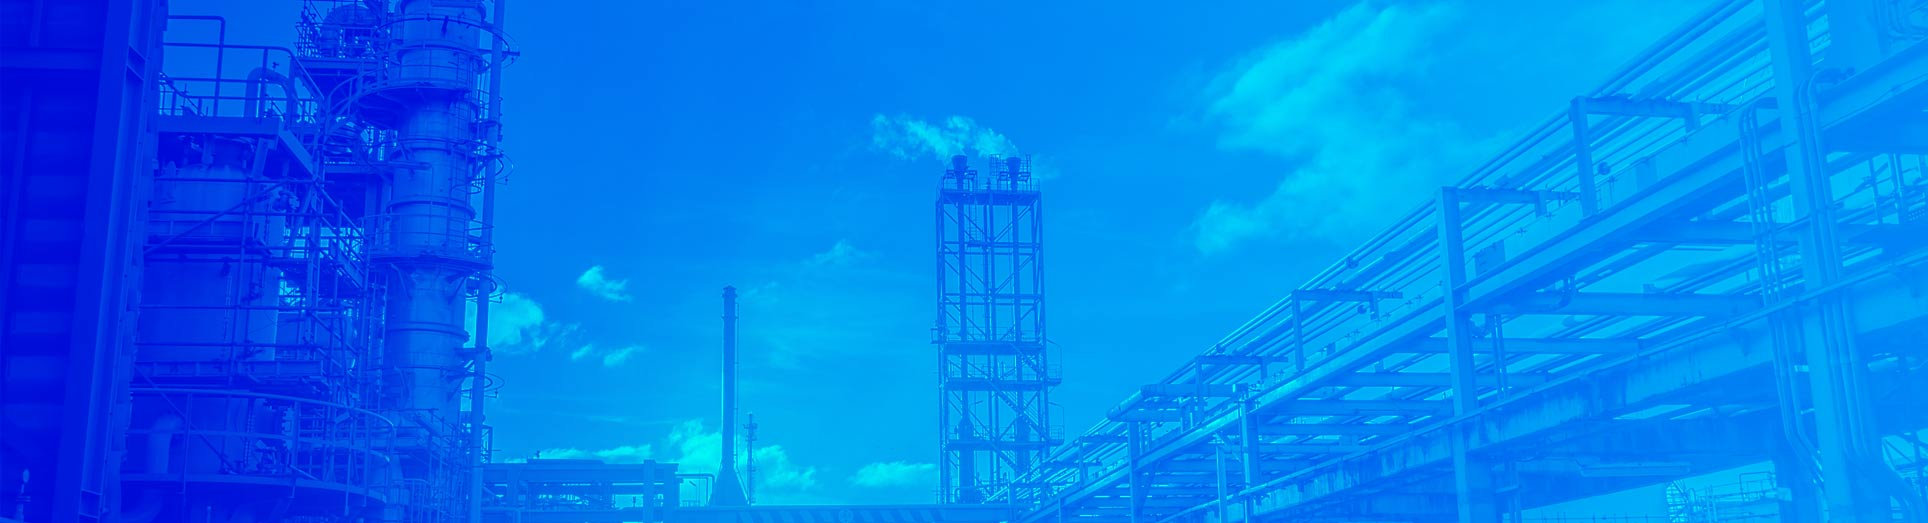 RAPID Deployment of Oracle ERP and SCM Cloud Modernizes Manufacturing Business Operations